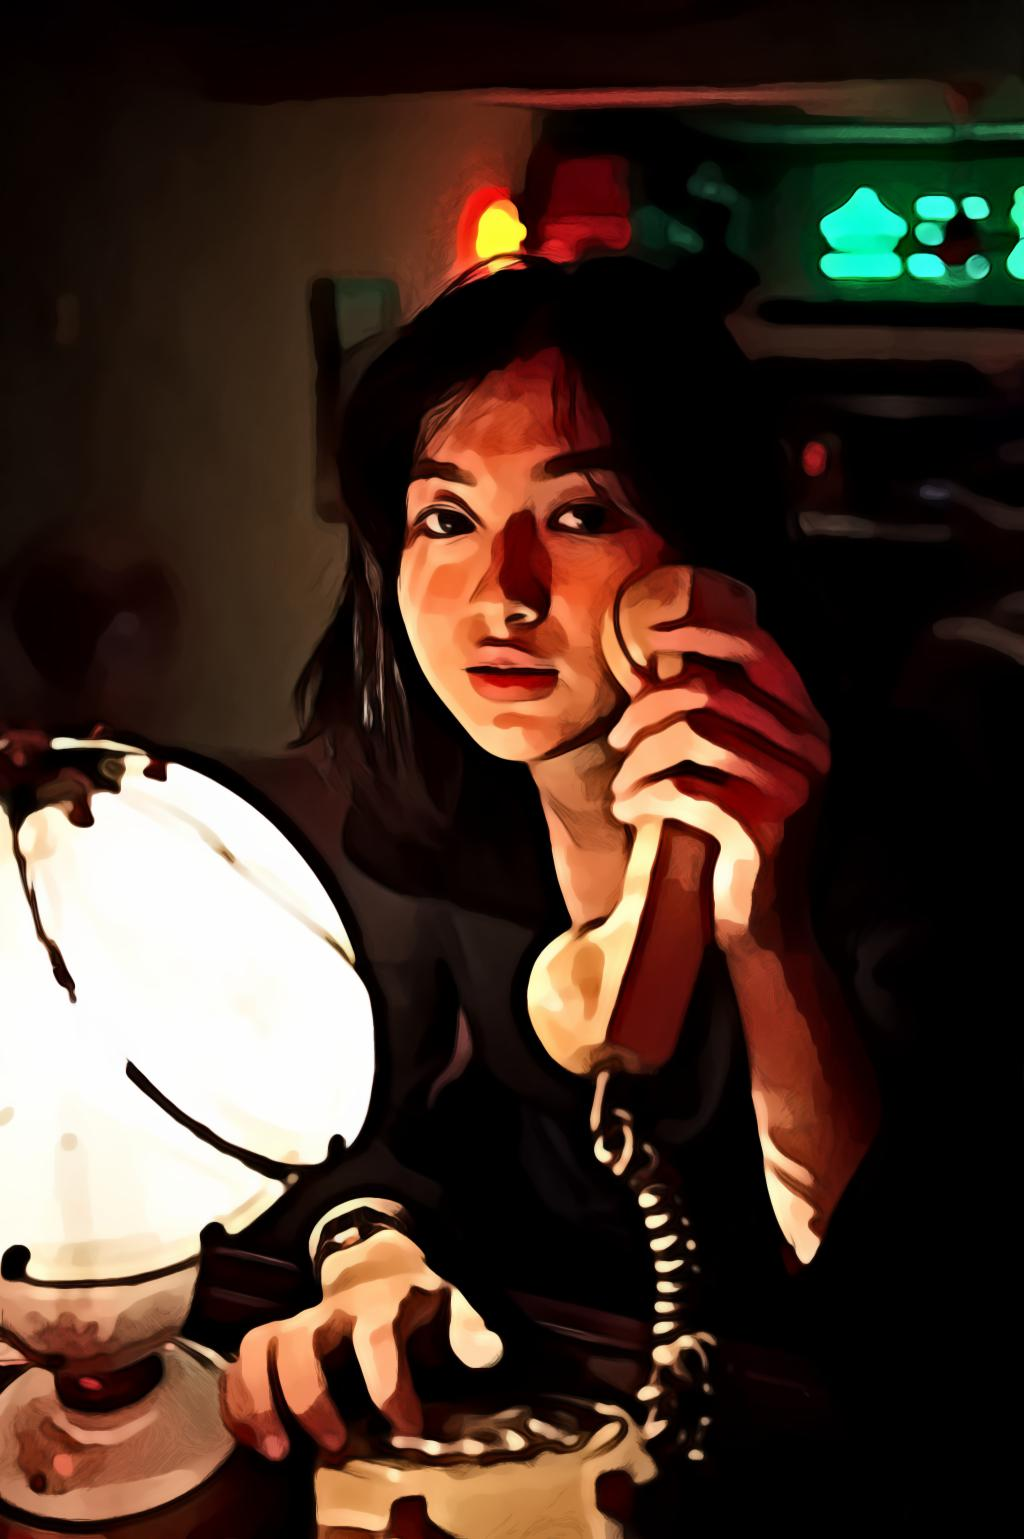 Close-Up Portrait of Woman Holding Telephone